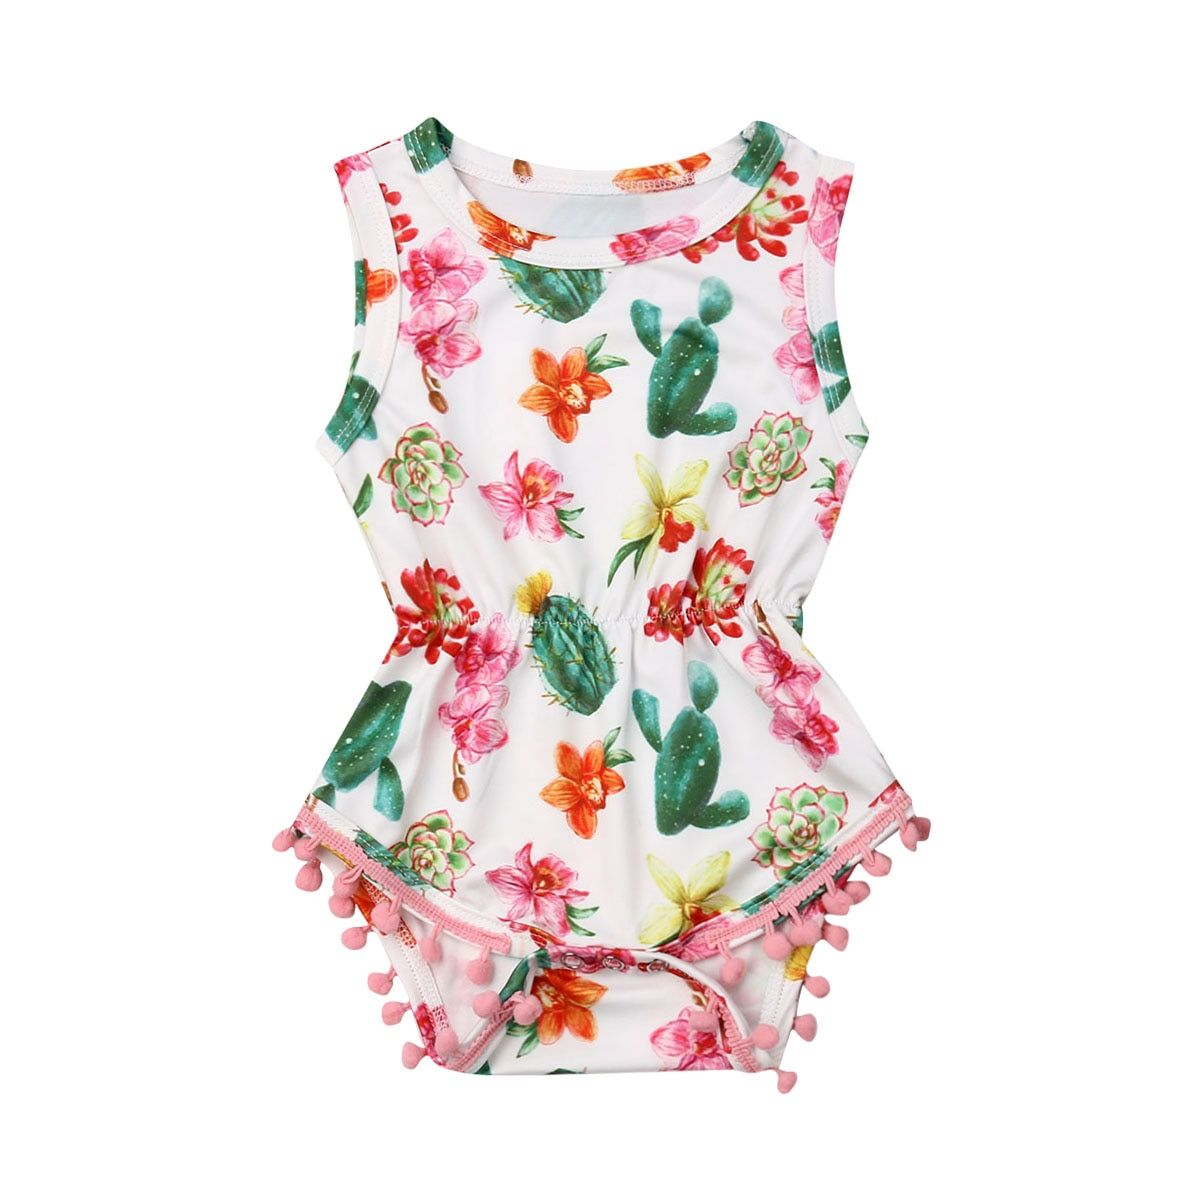 Dsood Newborn Baby Boys Girls Cactus Print Zipper Romper Jumpsuit Outfits Clothes